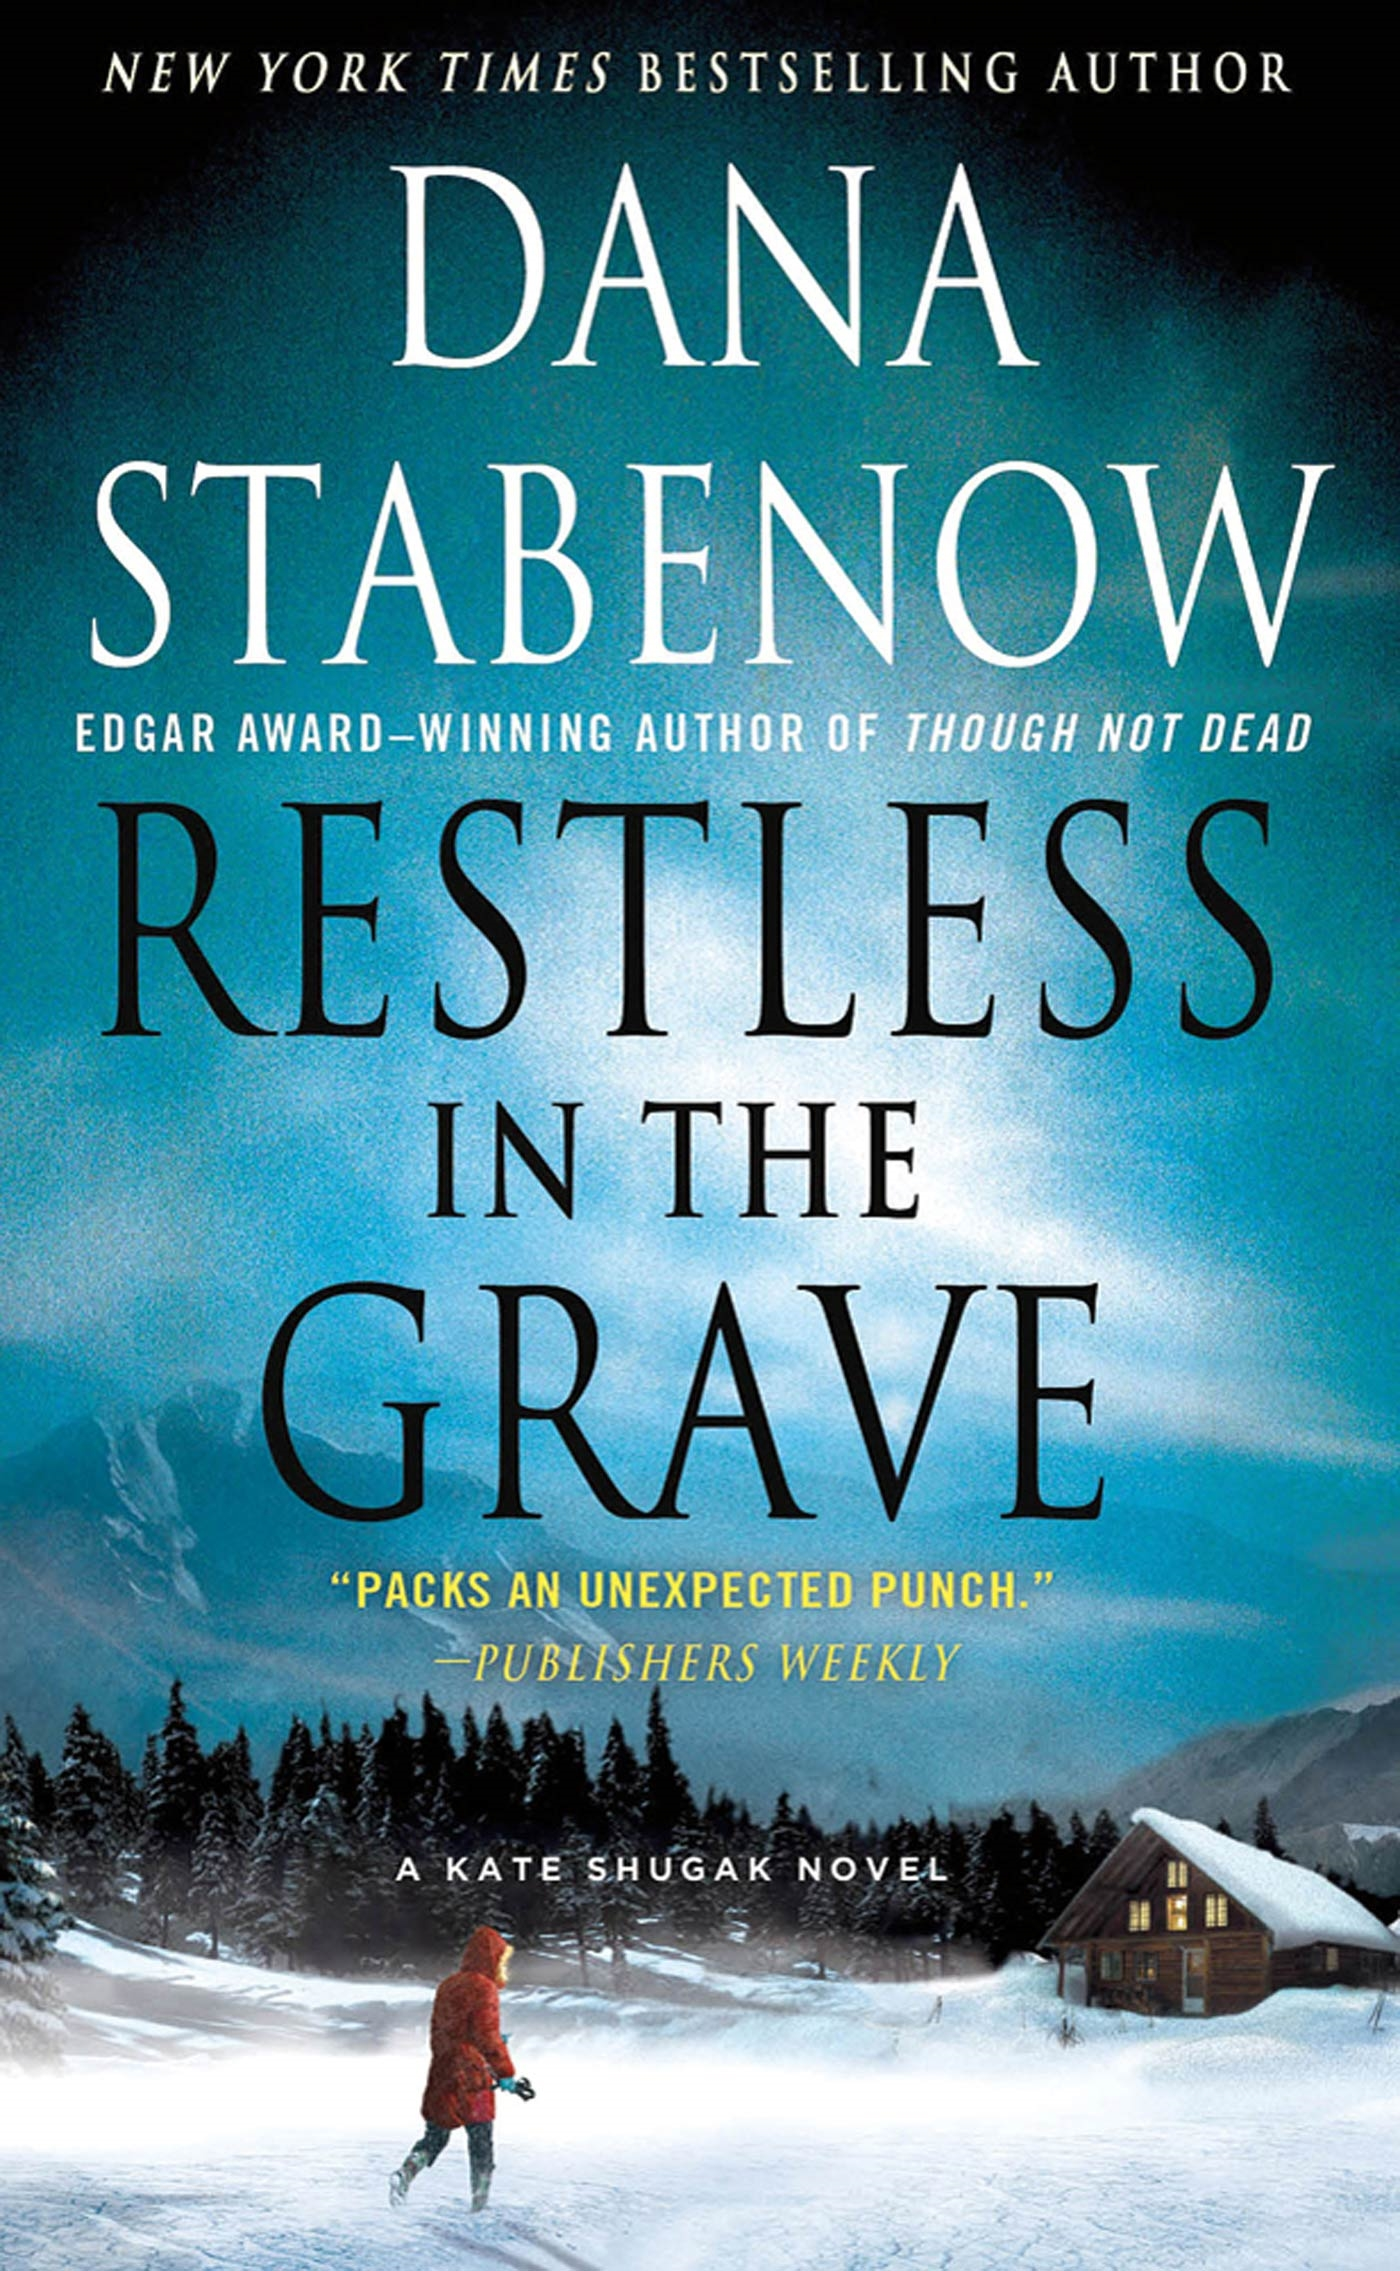 Restless in the grave cover image